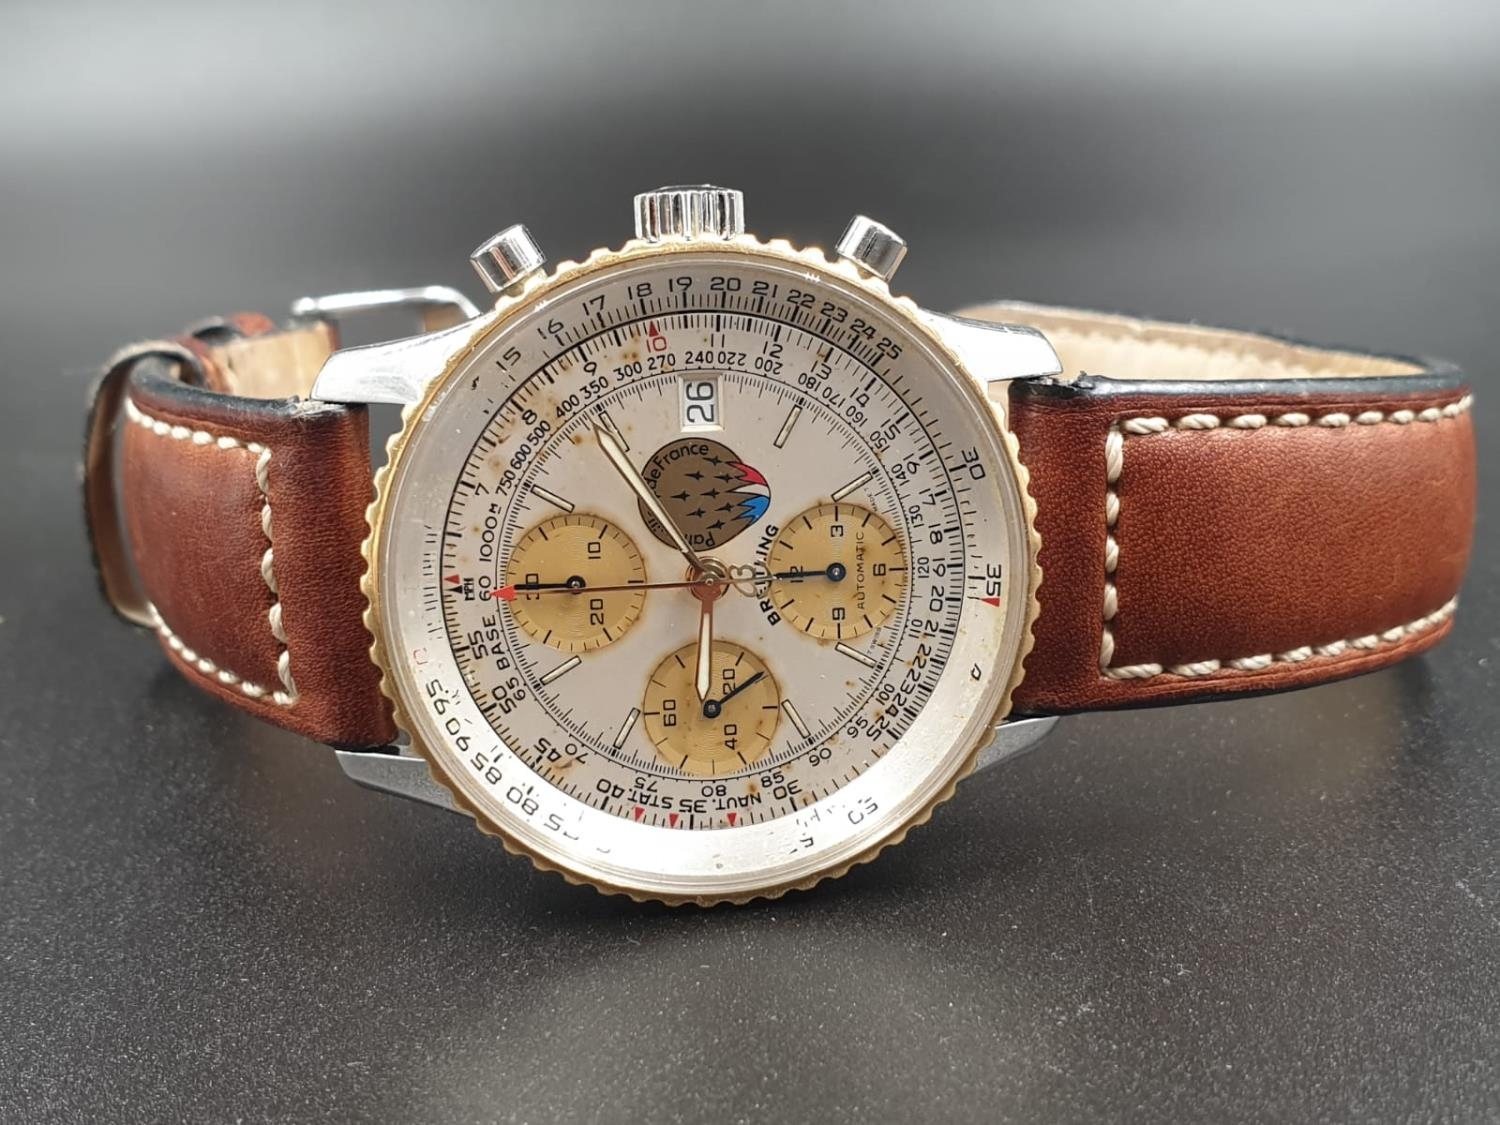 A BREITLING NAVITIMER CHRONOMETER AUTOMATIC MOVEMENT ON A LEATHER STRAP. 42mm - Image 4 of 10